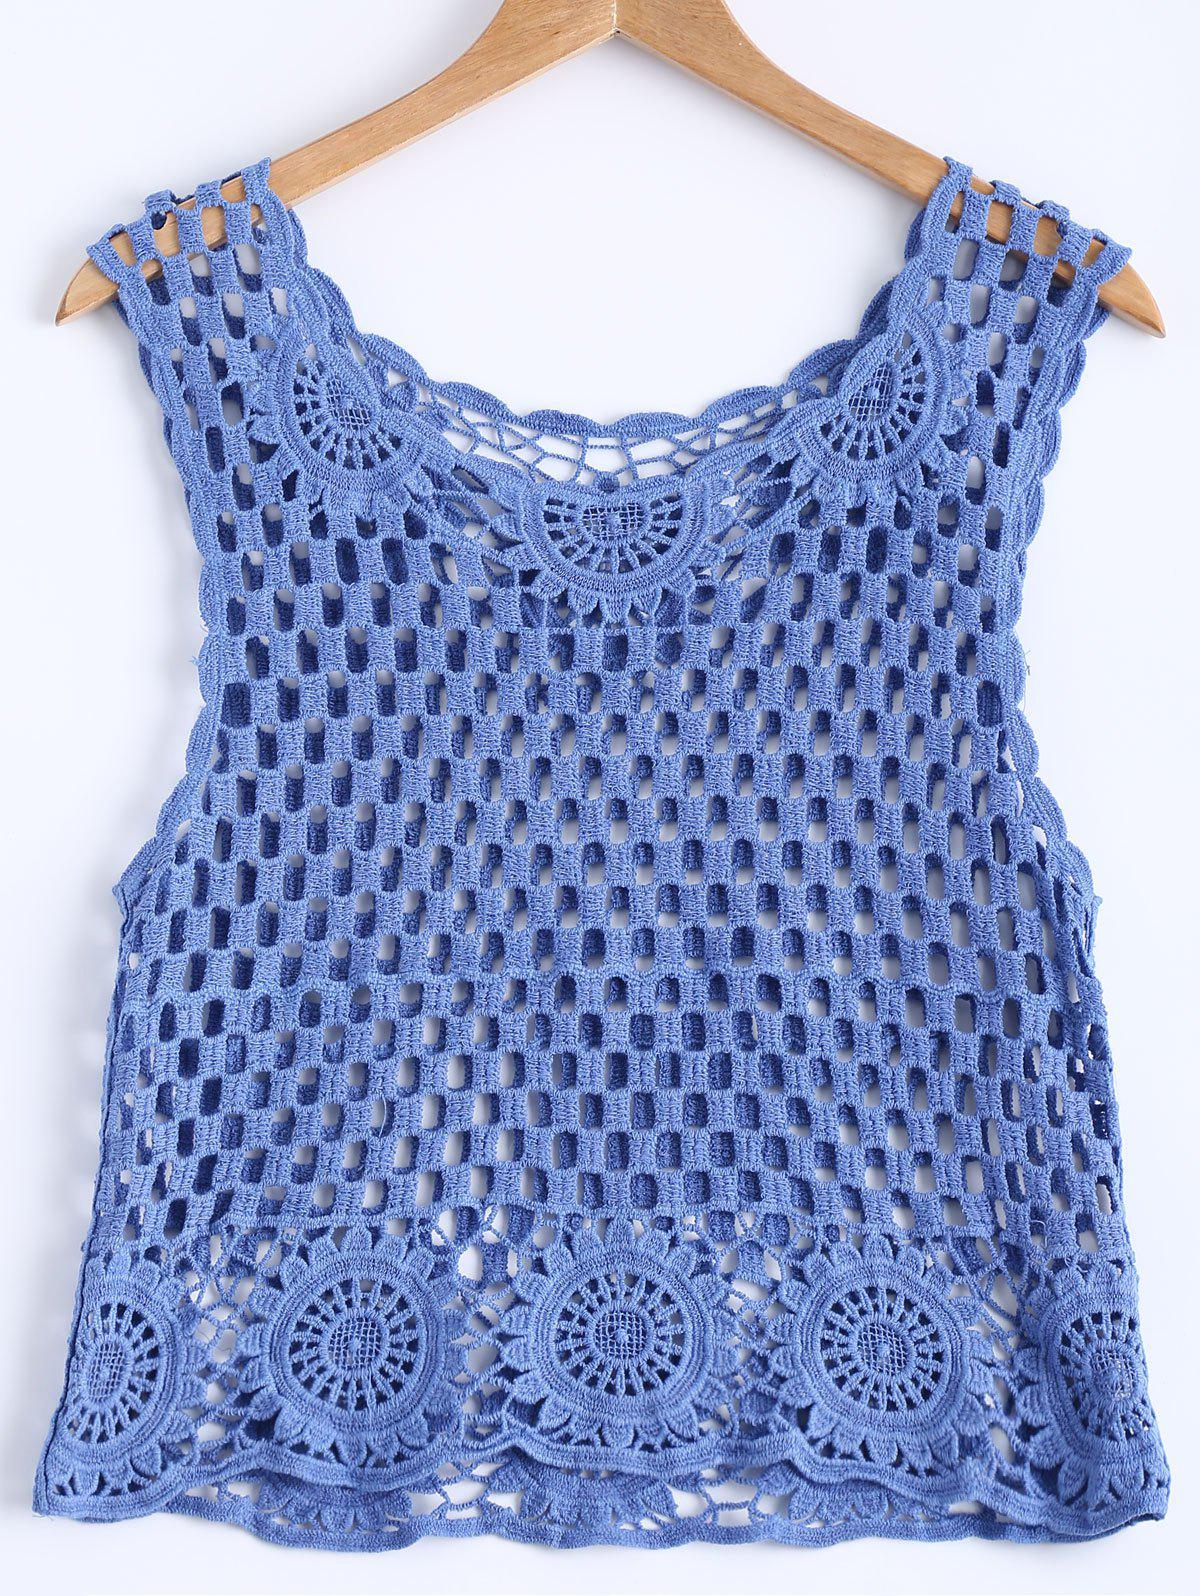 Stylish Women's Scoop Neck Crochet Openwork Tank Top - ROYAL BLUE ONE SIZE(FIT SIZE XS TO M)